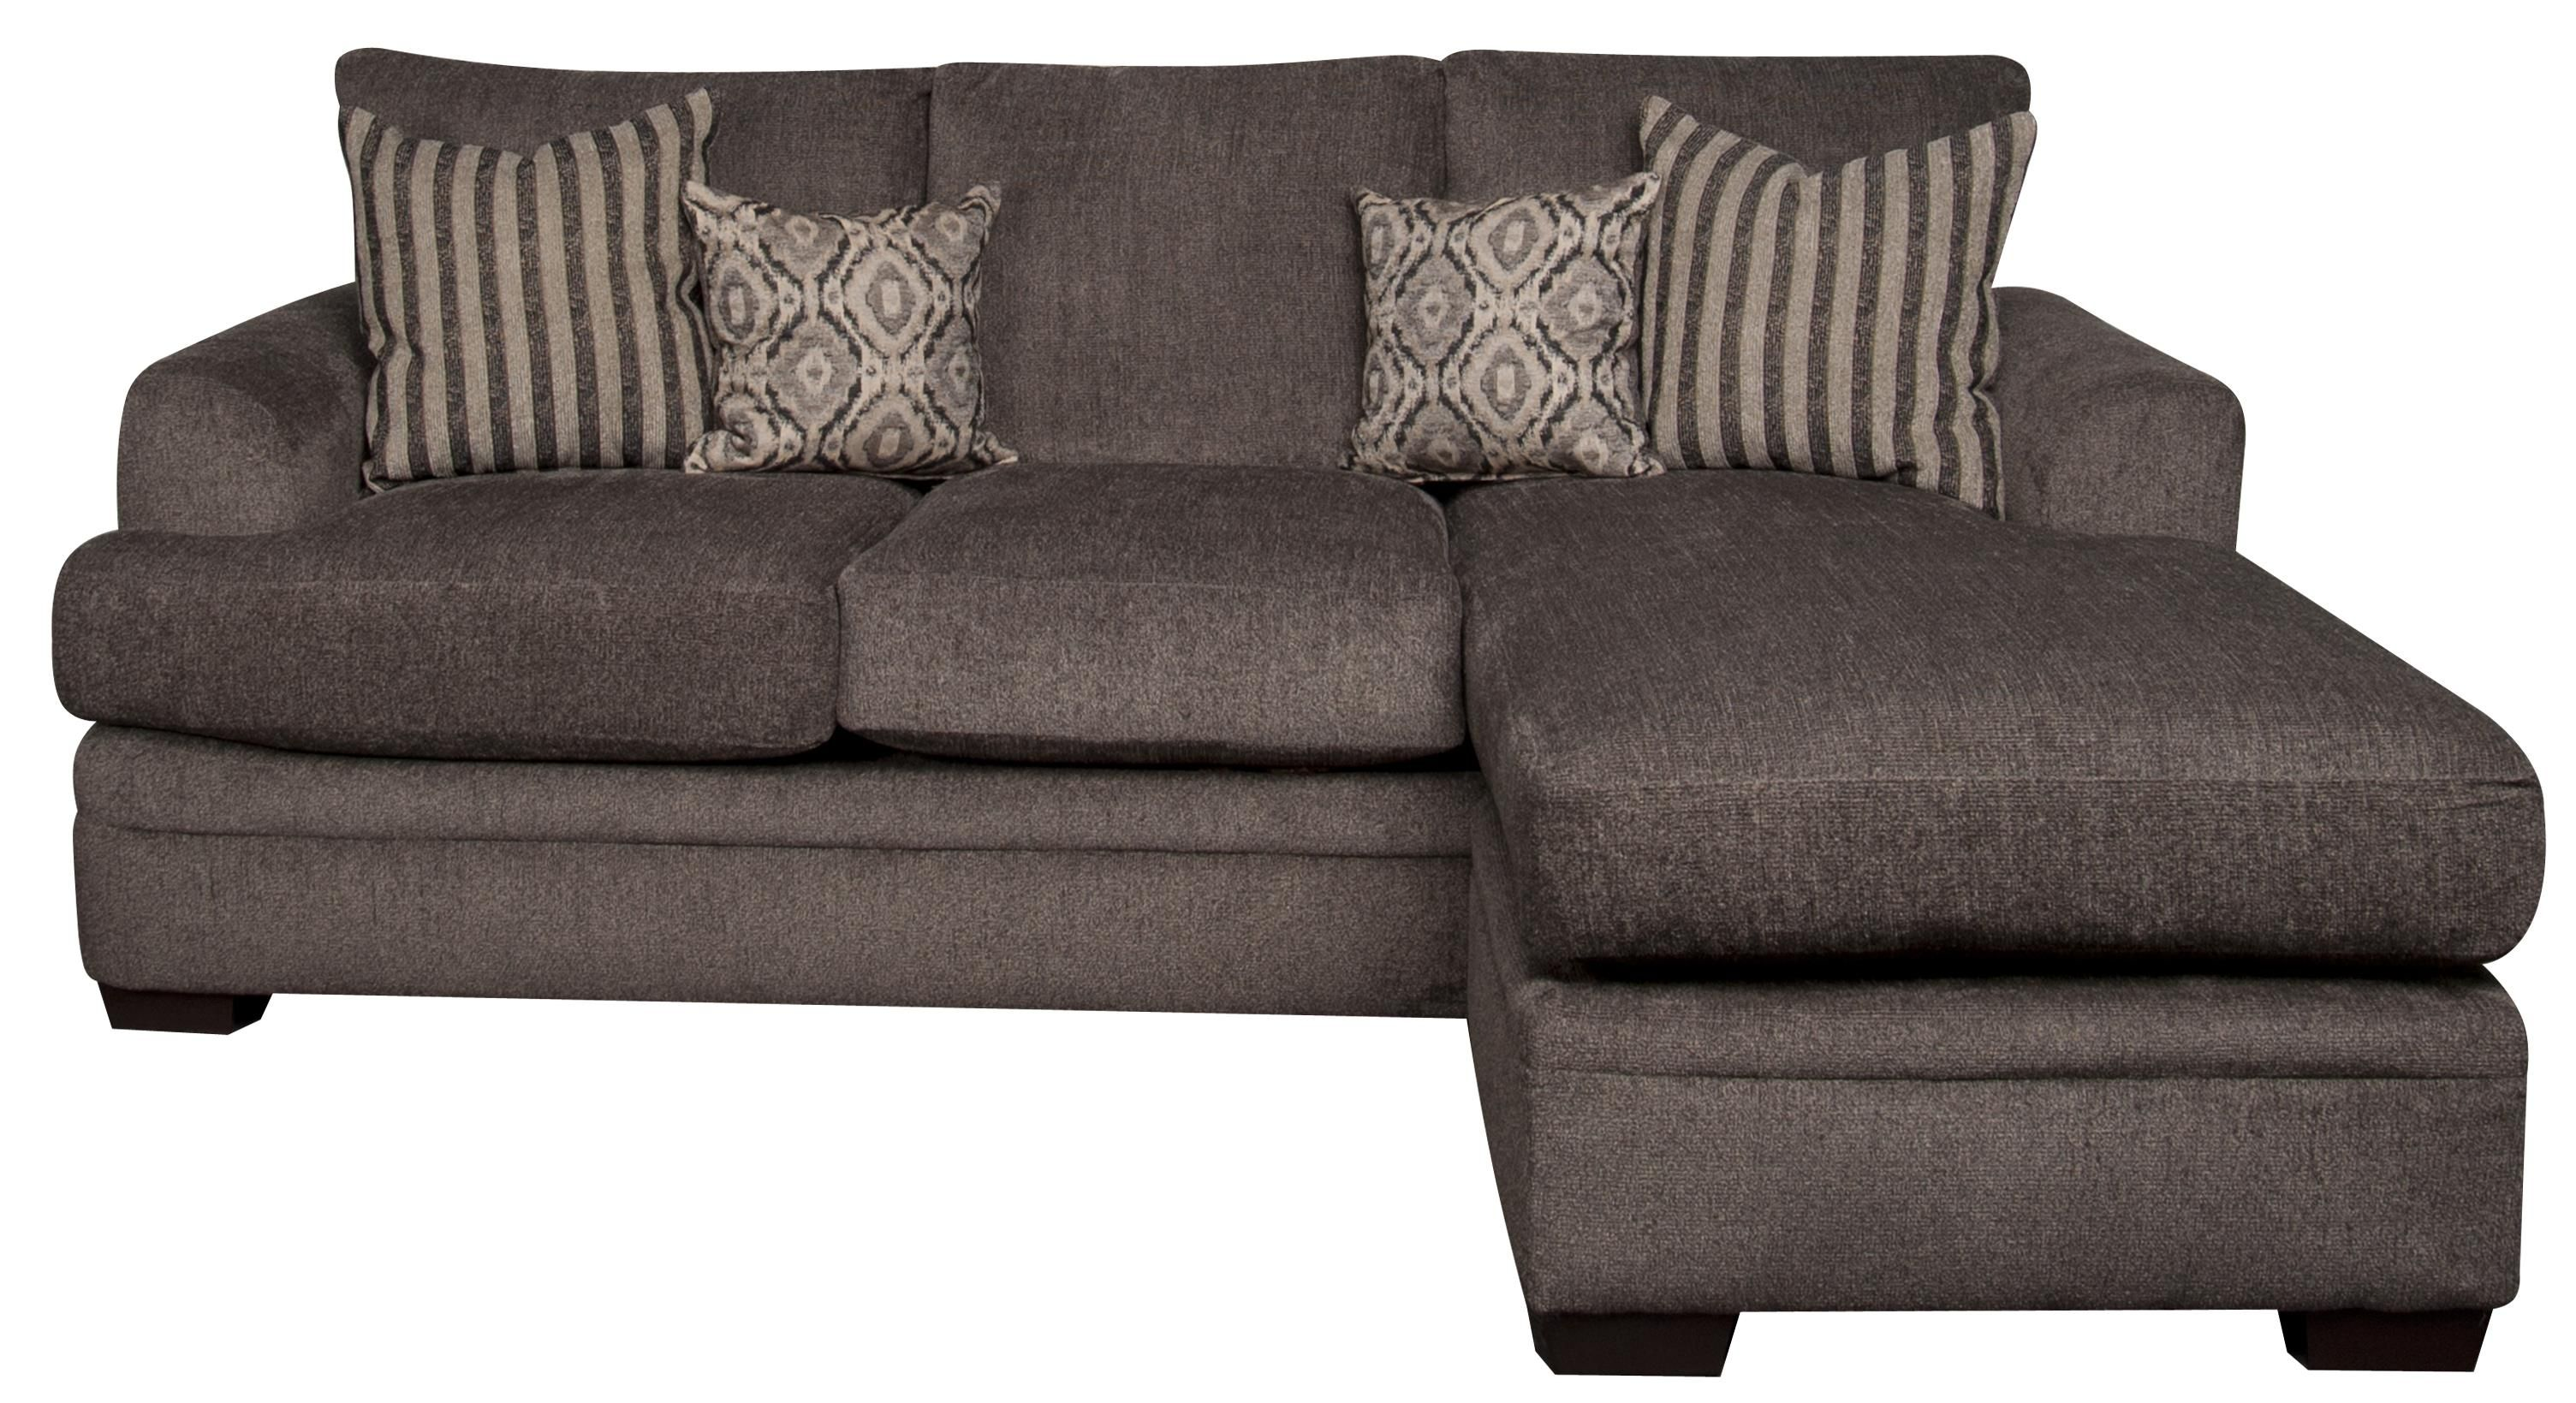 Eva Sofa Chaise With Accent Pillows By Peak Living At Morris Home